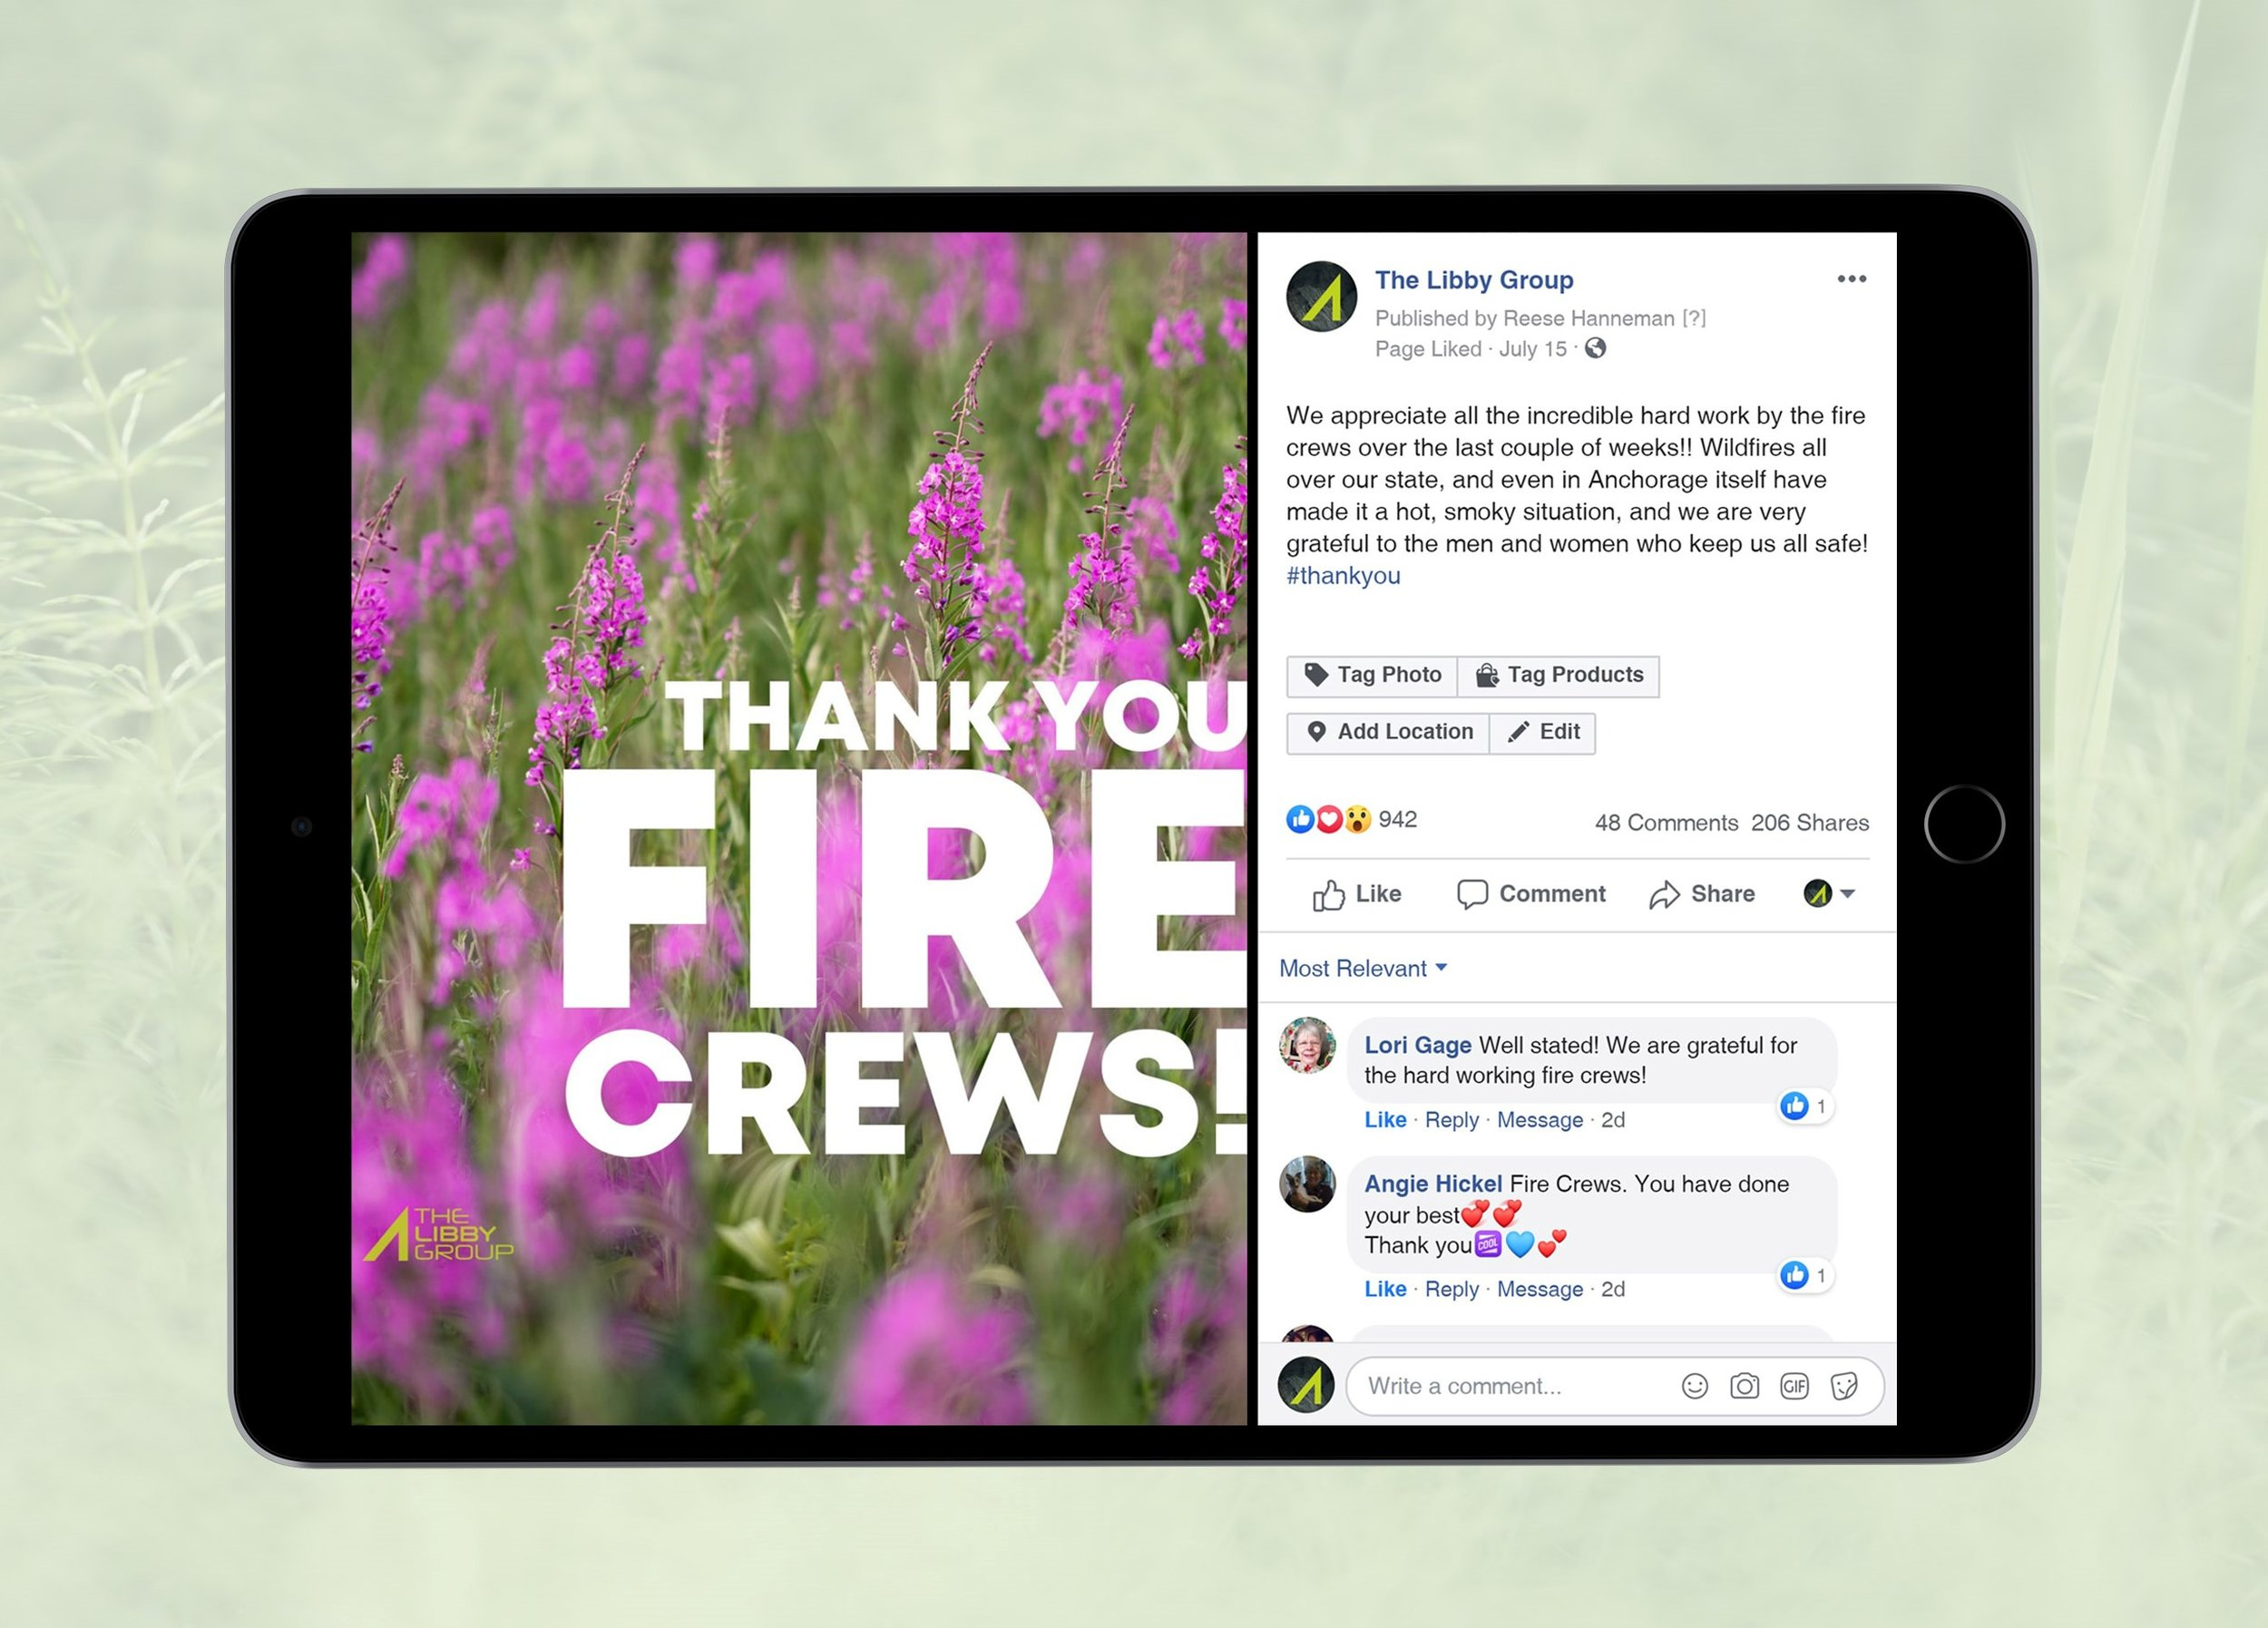 THE FIRES HAVE BEEN PUT OUT (MOSTLY) - The community gets behind collective thank you notes.